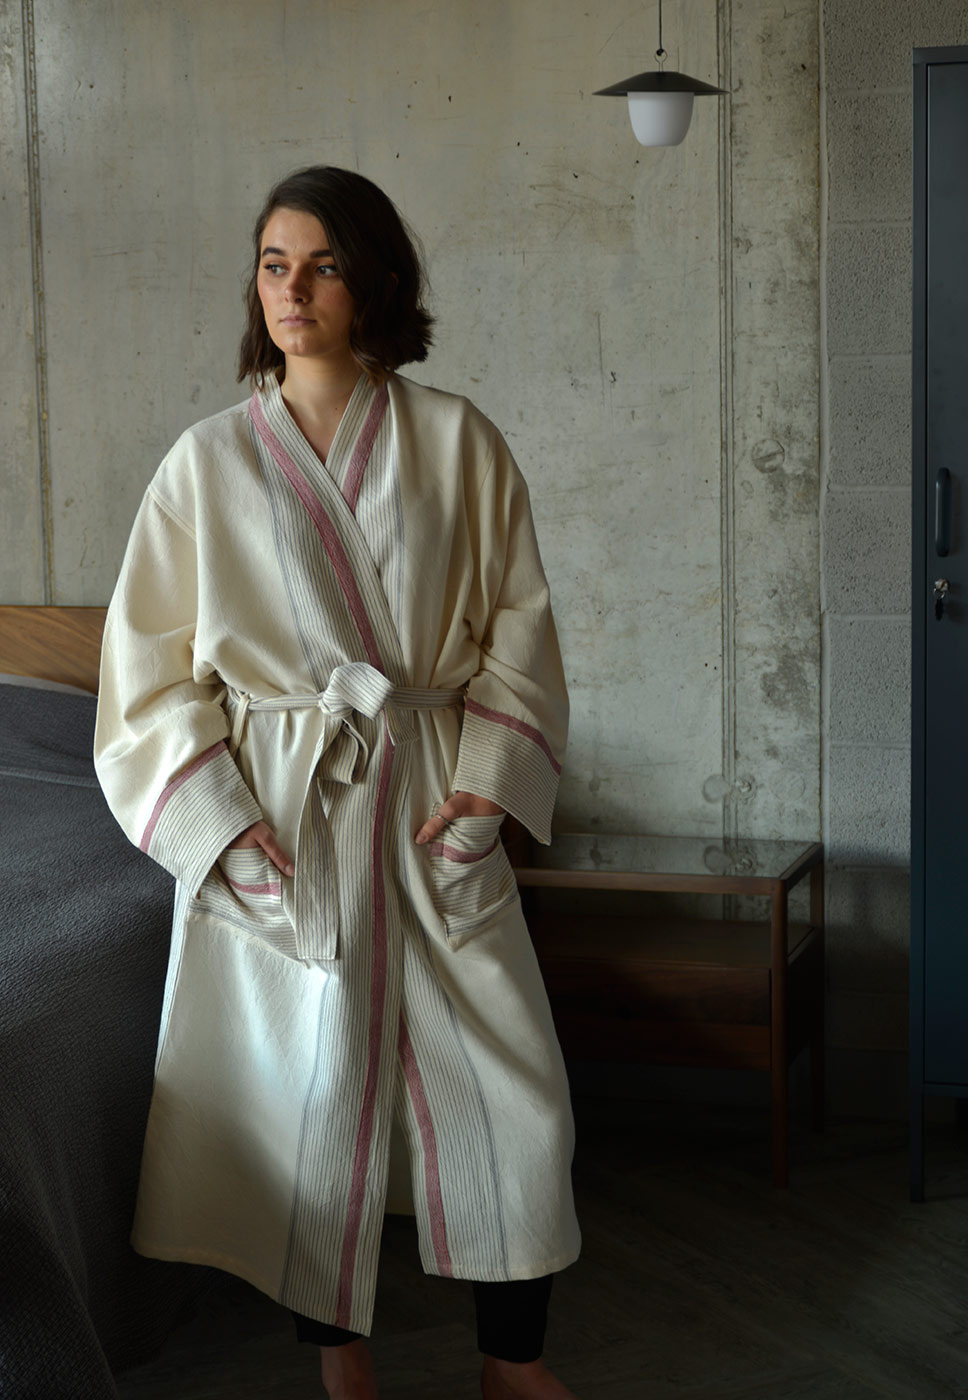 ivory soft cotton robe with striped details a closer view